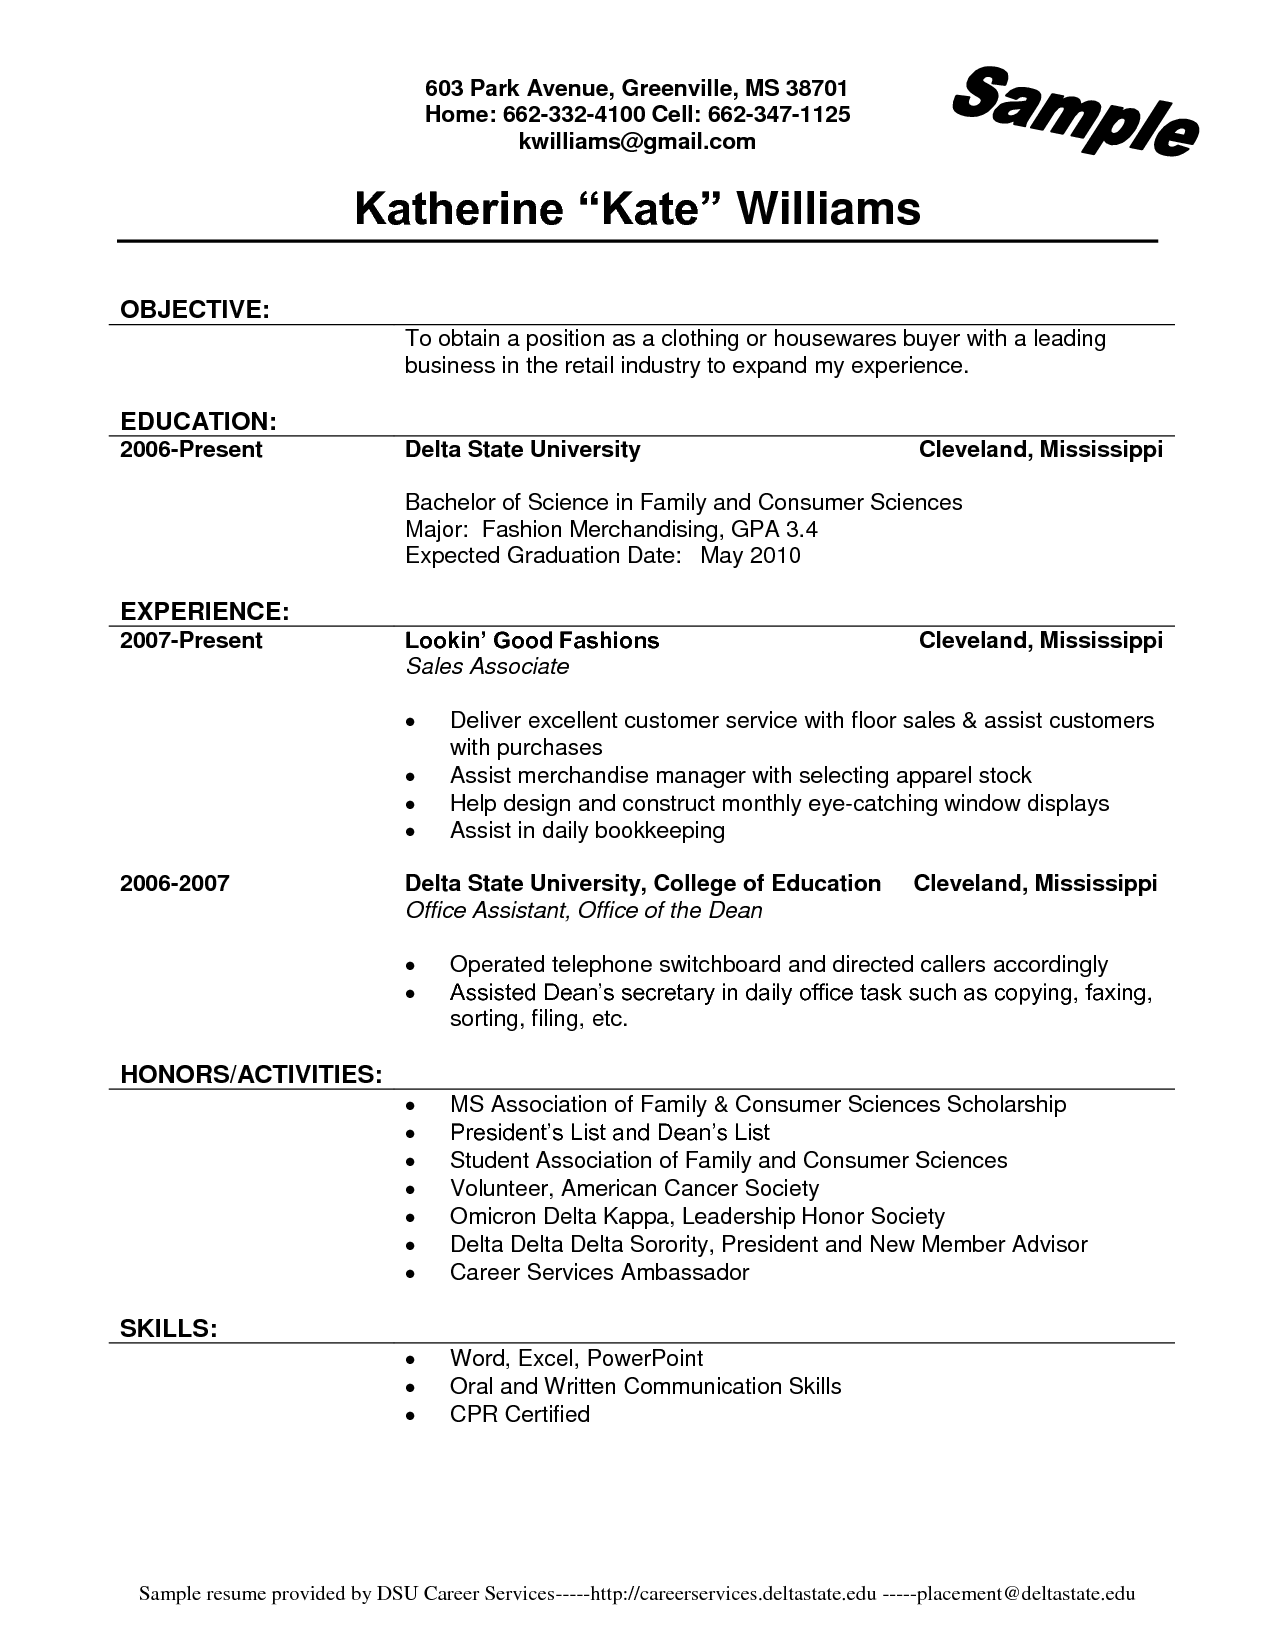 Retail Job Description For Resume Retail Sales Resume Examples  Httpwwwjobresumewebsiteretail